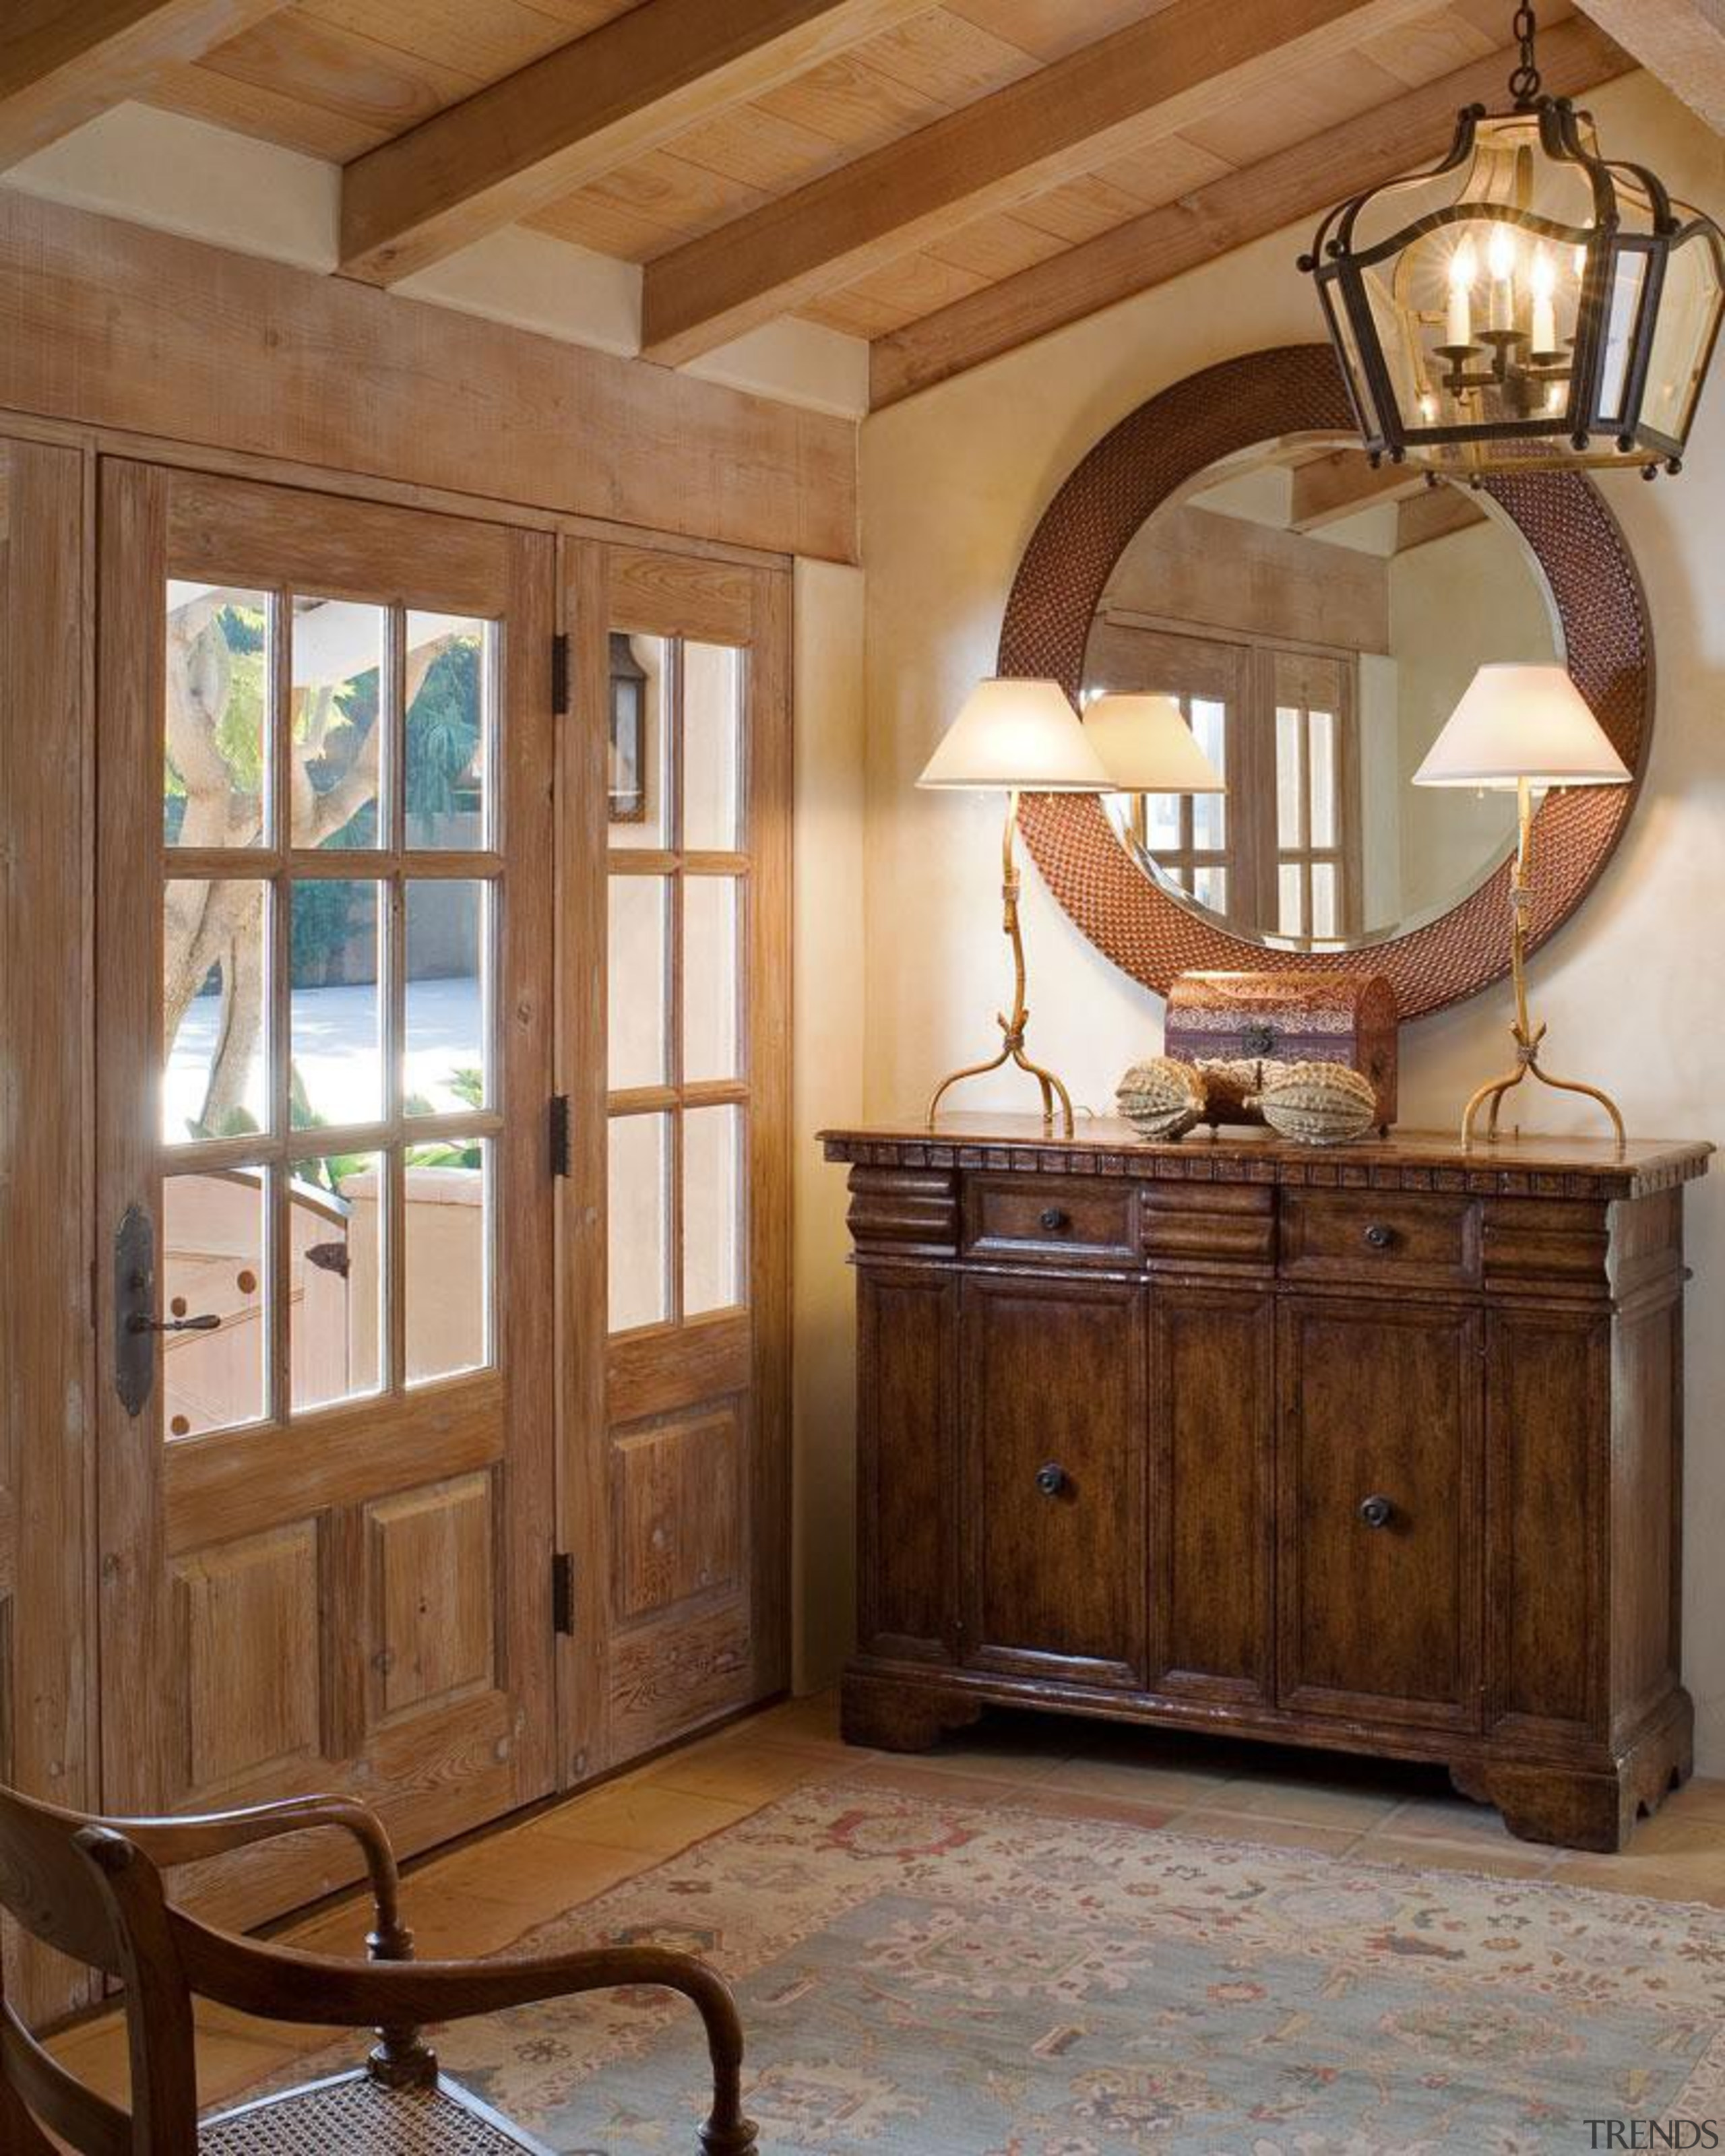 Our aesthetic is characterized by diversity and unified cabinetry, ceiling, floor, flooring, furniture, hardwood, home, interior design, window, wood, wood flooring, wood stain, brown